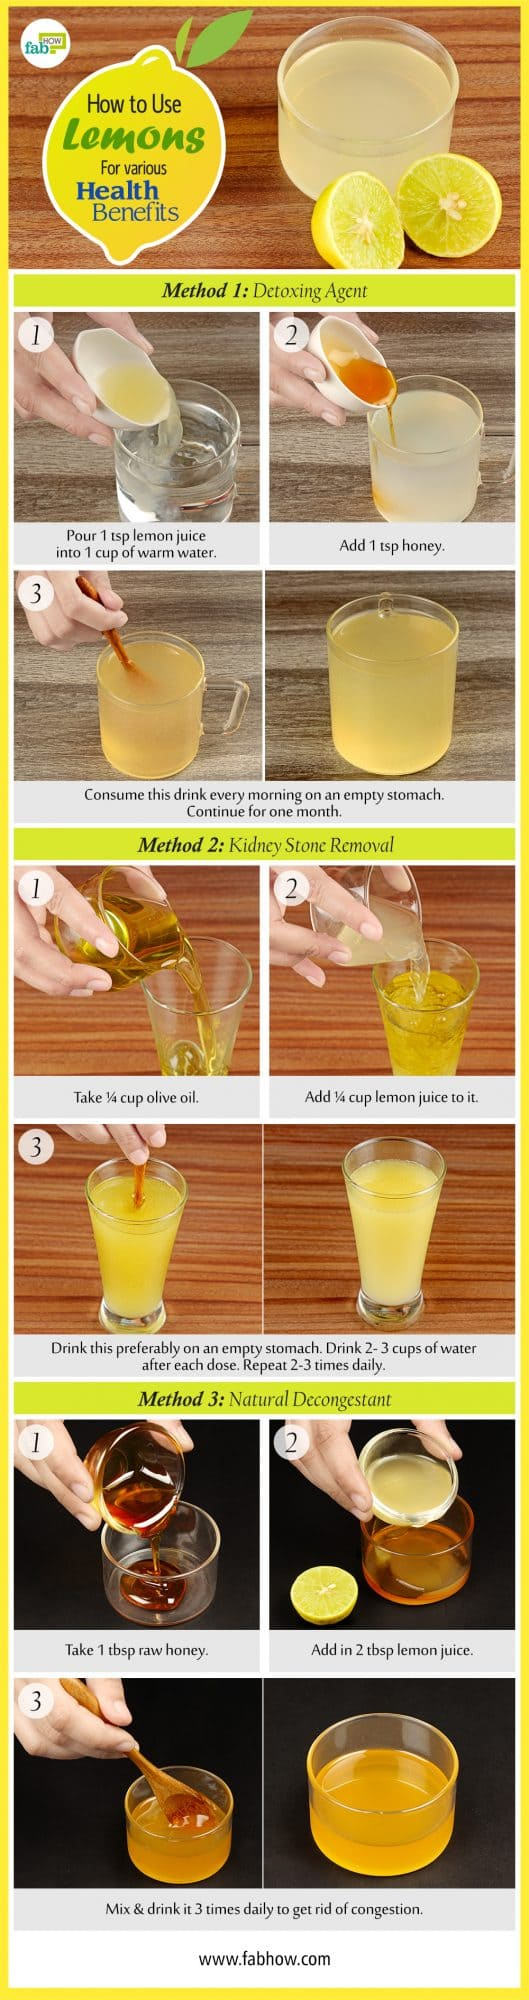 how to use lemon for health benefits summary